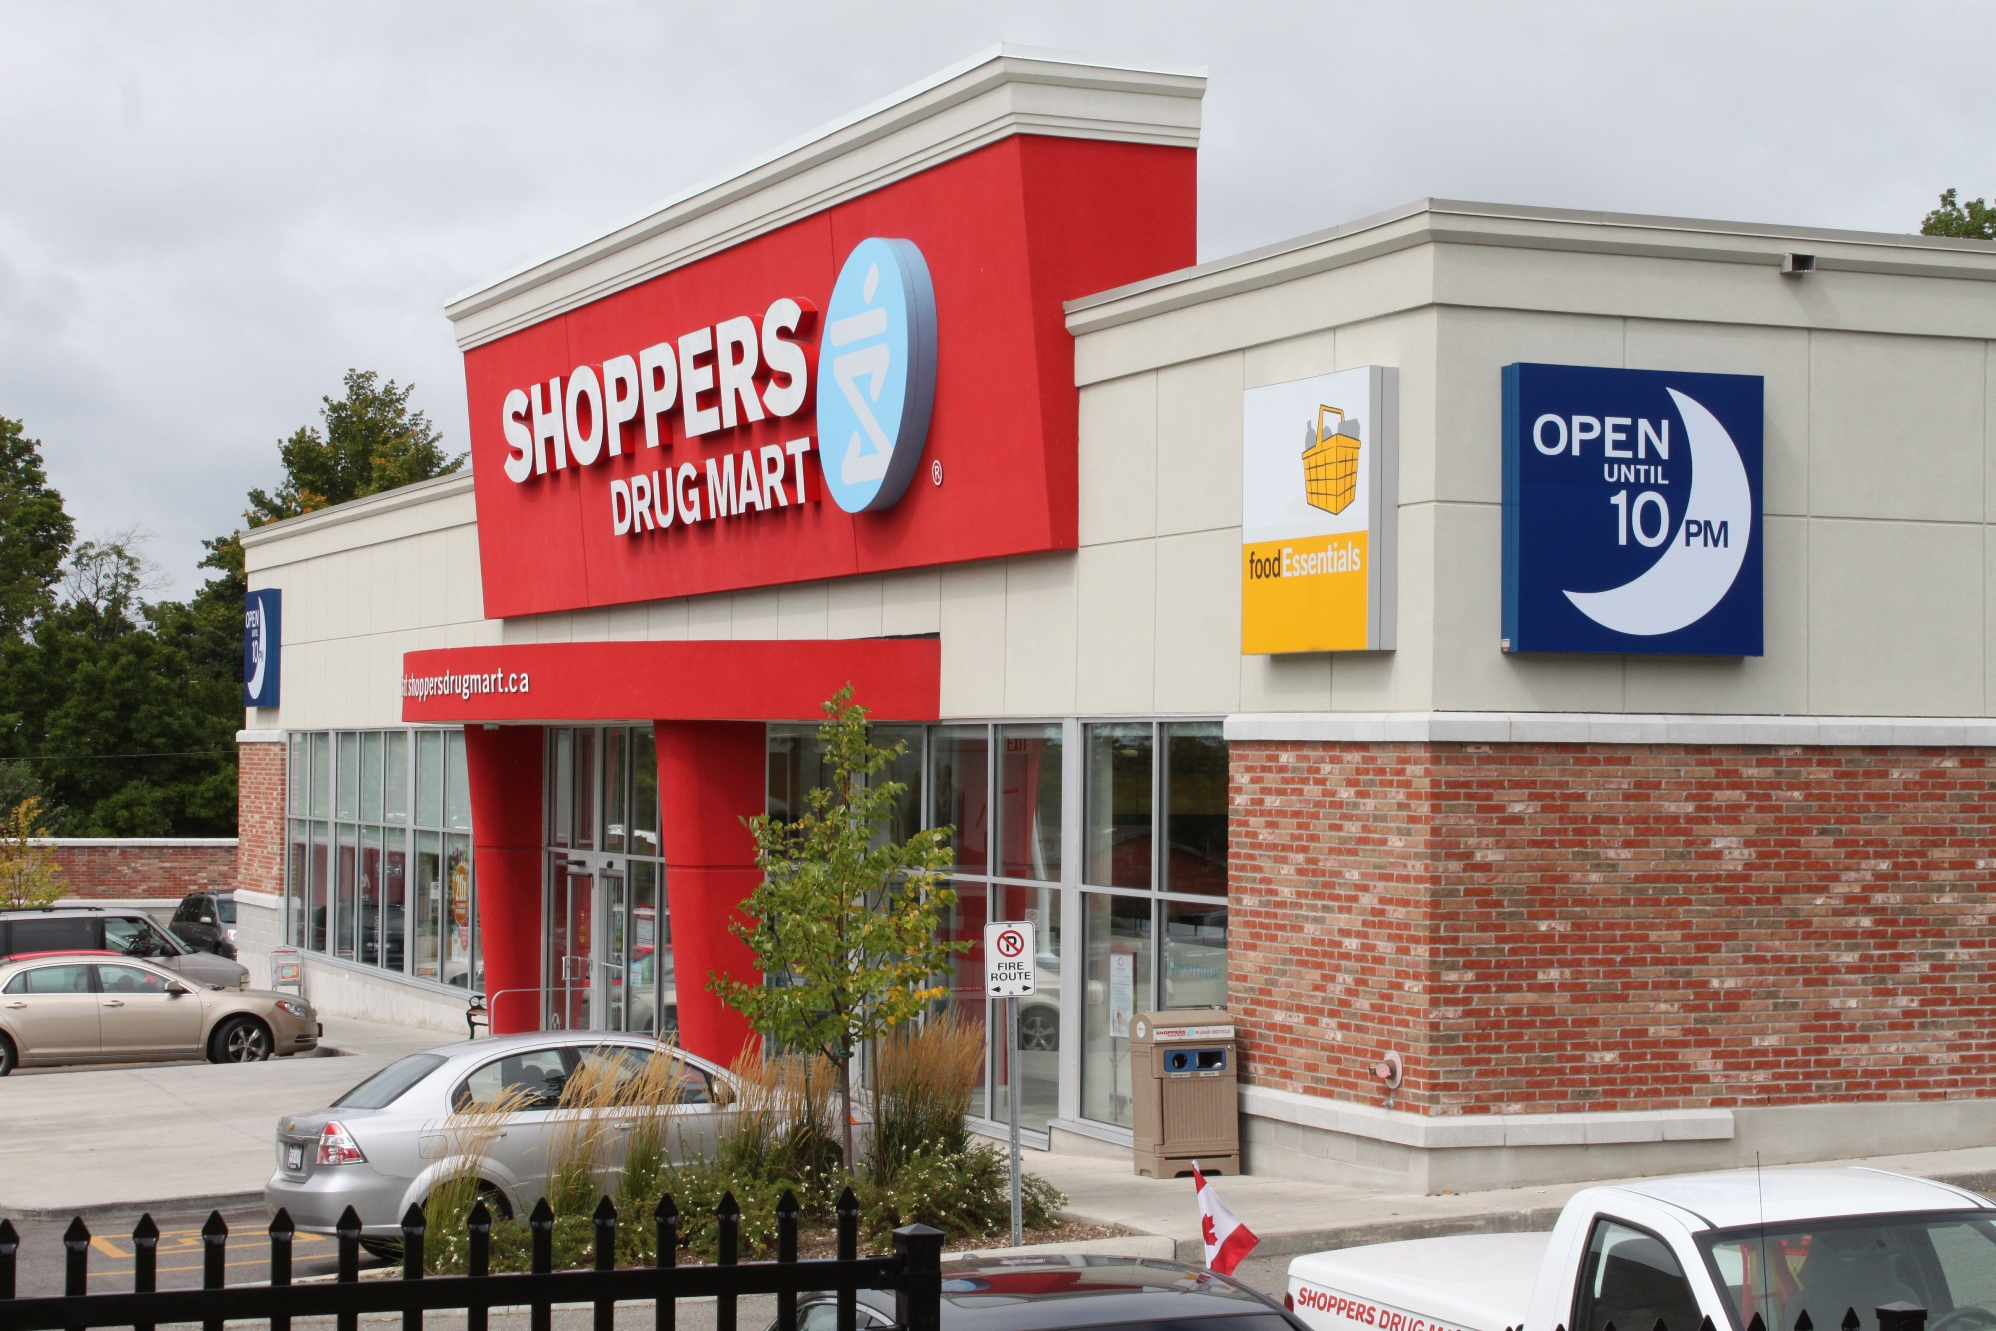 Nov 15,  · Sign-UP FOR SHOPPERS DRUG MART EMAILS. Join the Shoppers Drug Mart email list and always stay in touch! Make sure to provide below the email address that is associated with your PC Optimum account. By providing your email address, you consent to receive electronic communications from Shoppers Drug Mart Inc.